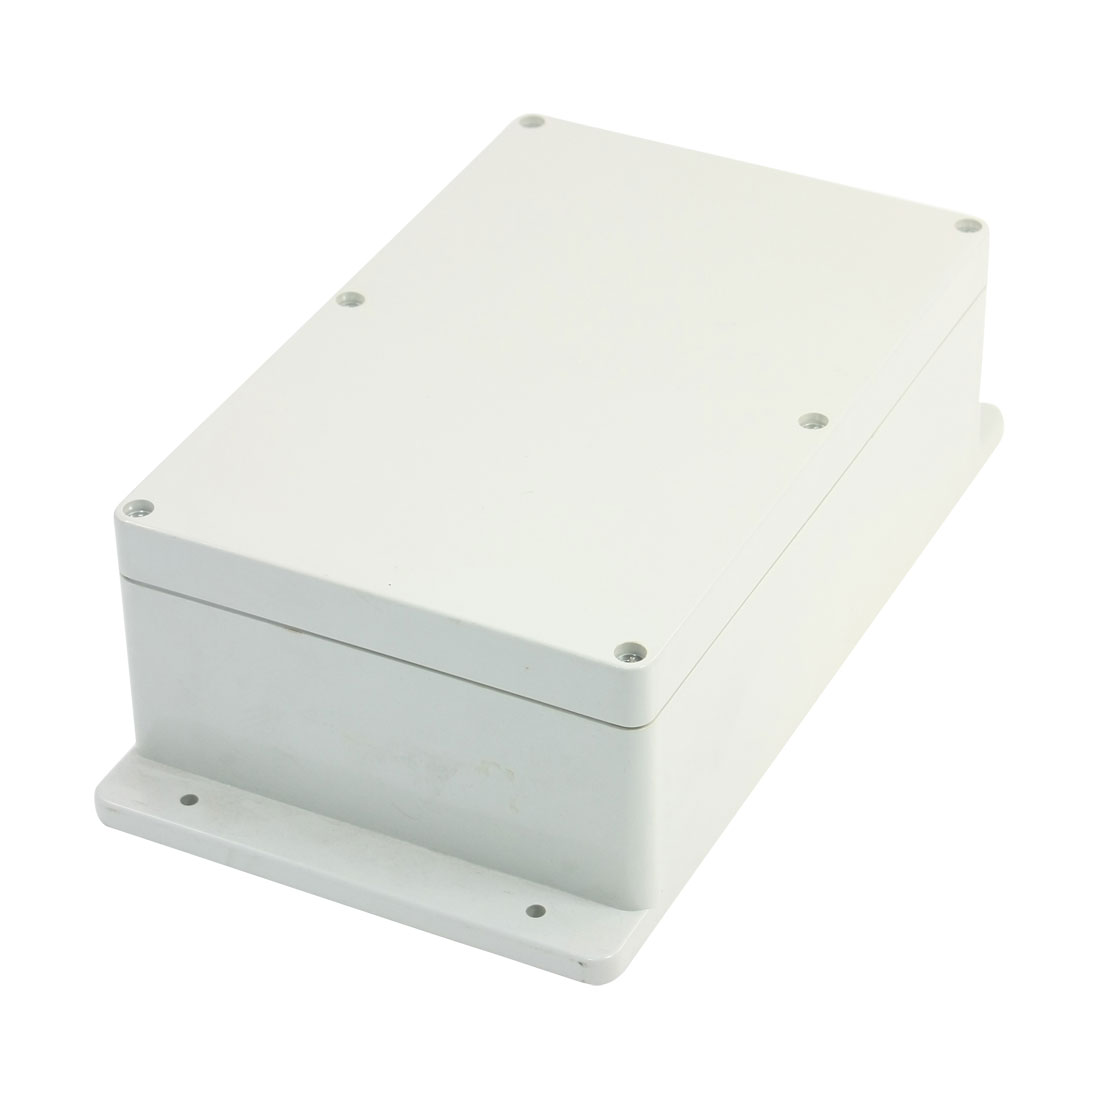 230mmx150mmx85mm-Waterproof-Plastic-Enclosure-Case-Power-Junction-Box